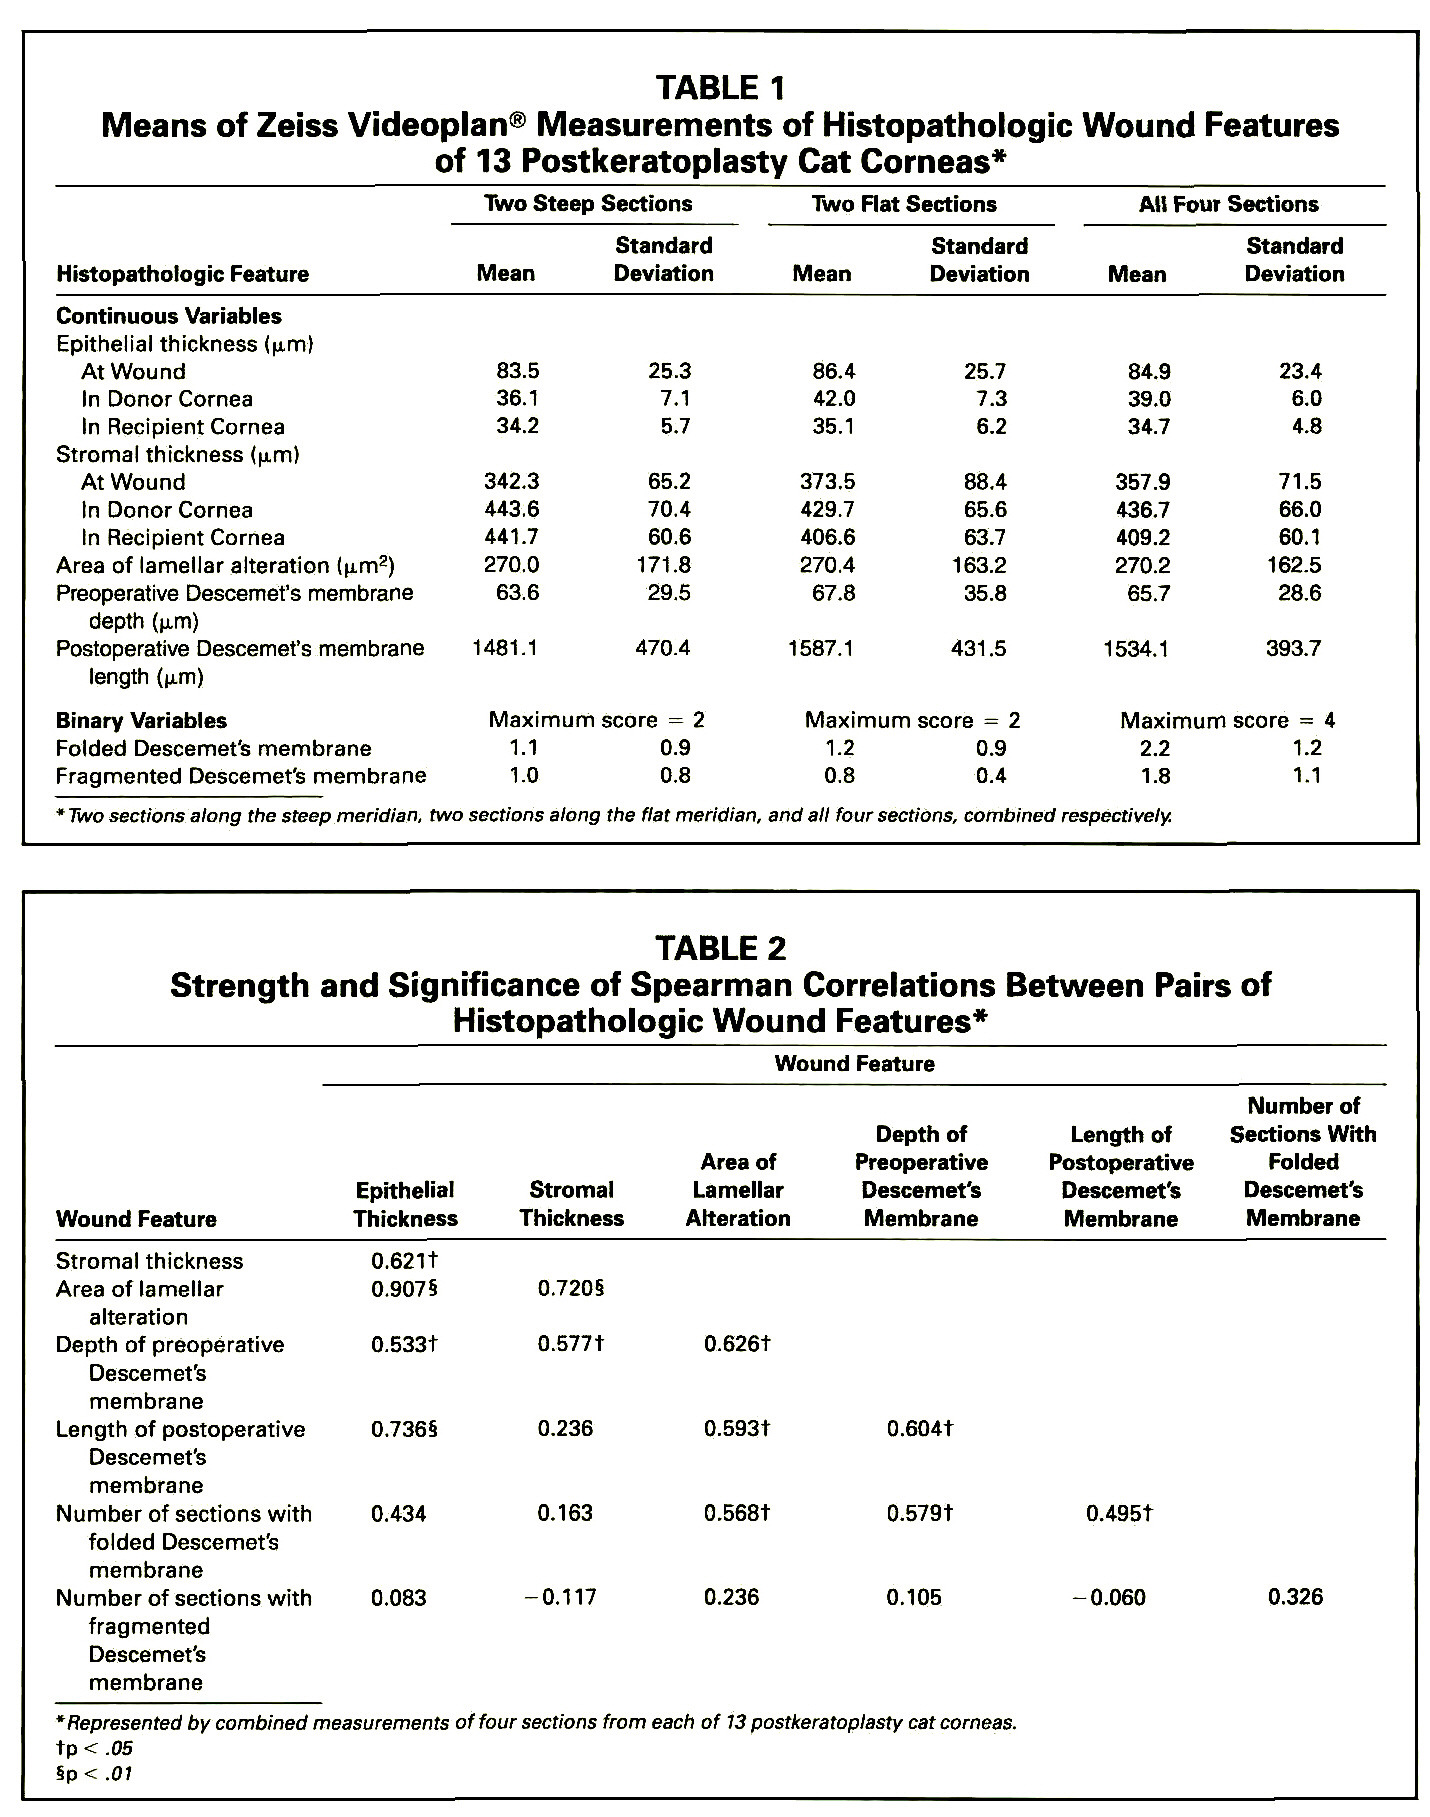 TABLE 1Means of Zeiss Videoplan® Measurements of Histopathologic Wound Features of 13 Postkeratoplasty Cat Corneas*TABLE 2Strength and Significance of Spearman Correlations Between Pairs of Histopathologic Wound Features*